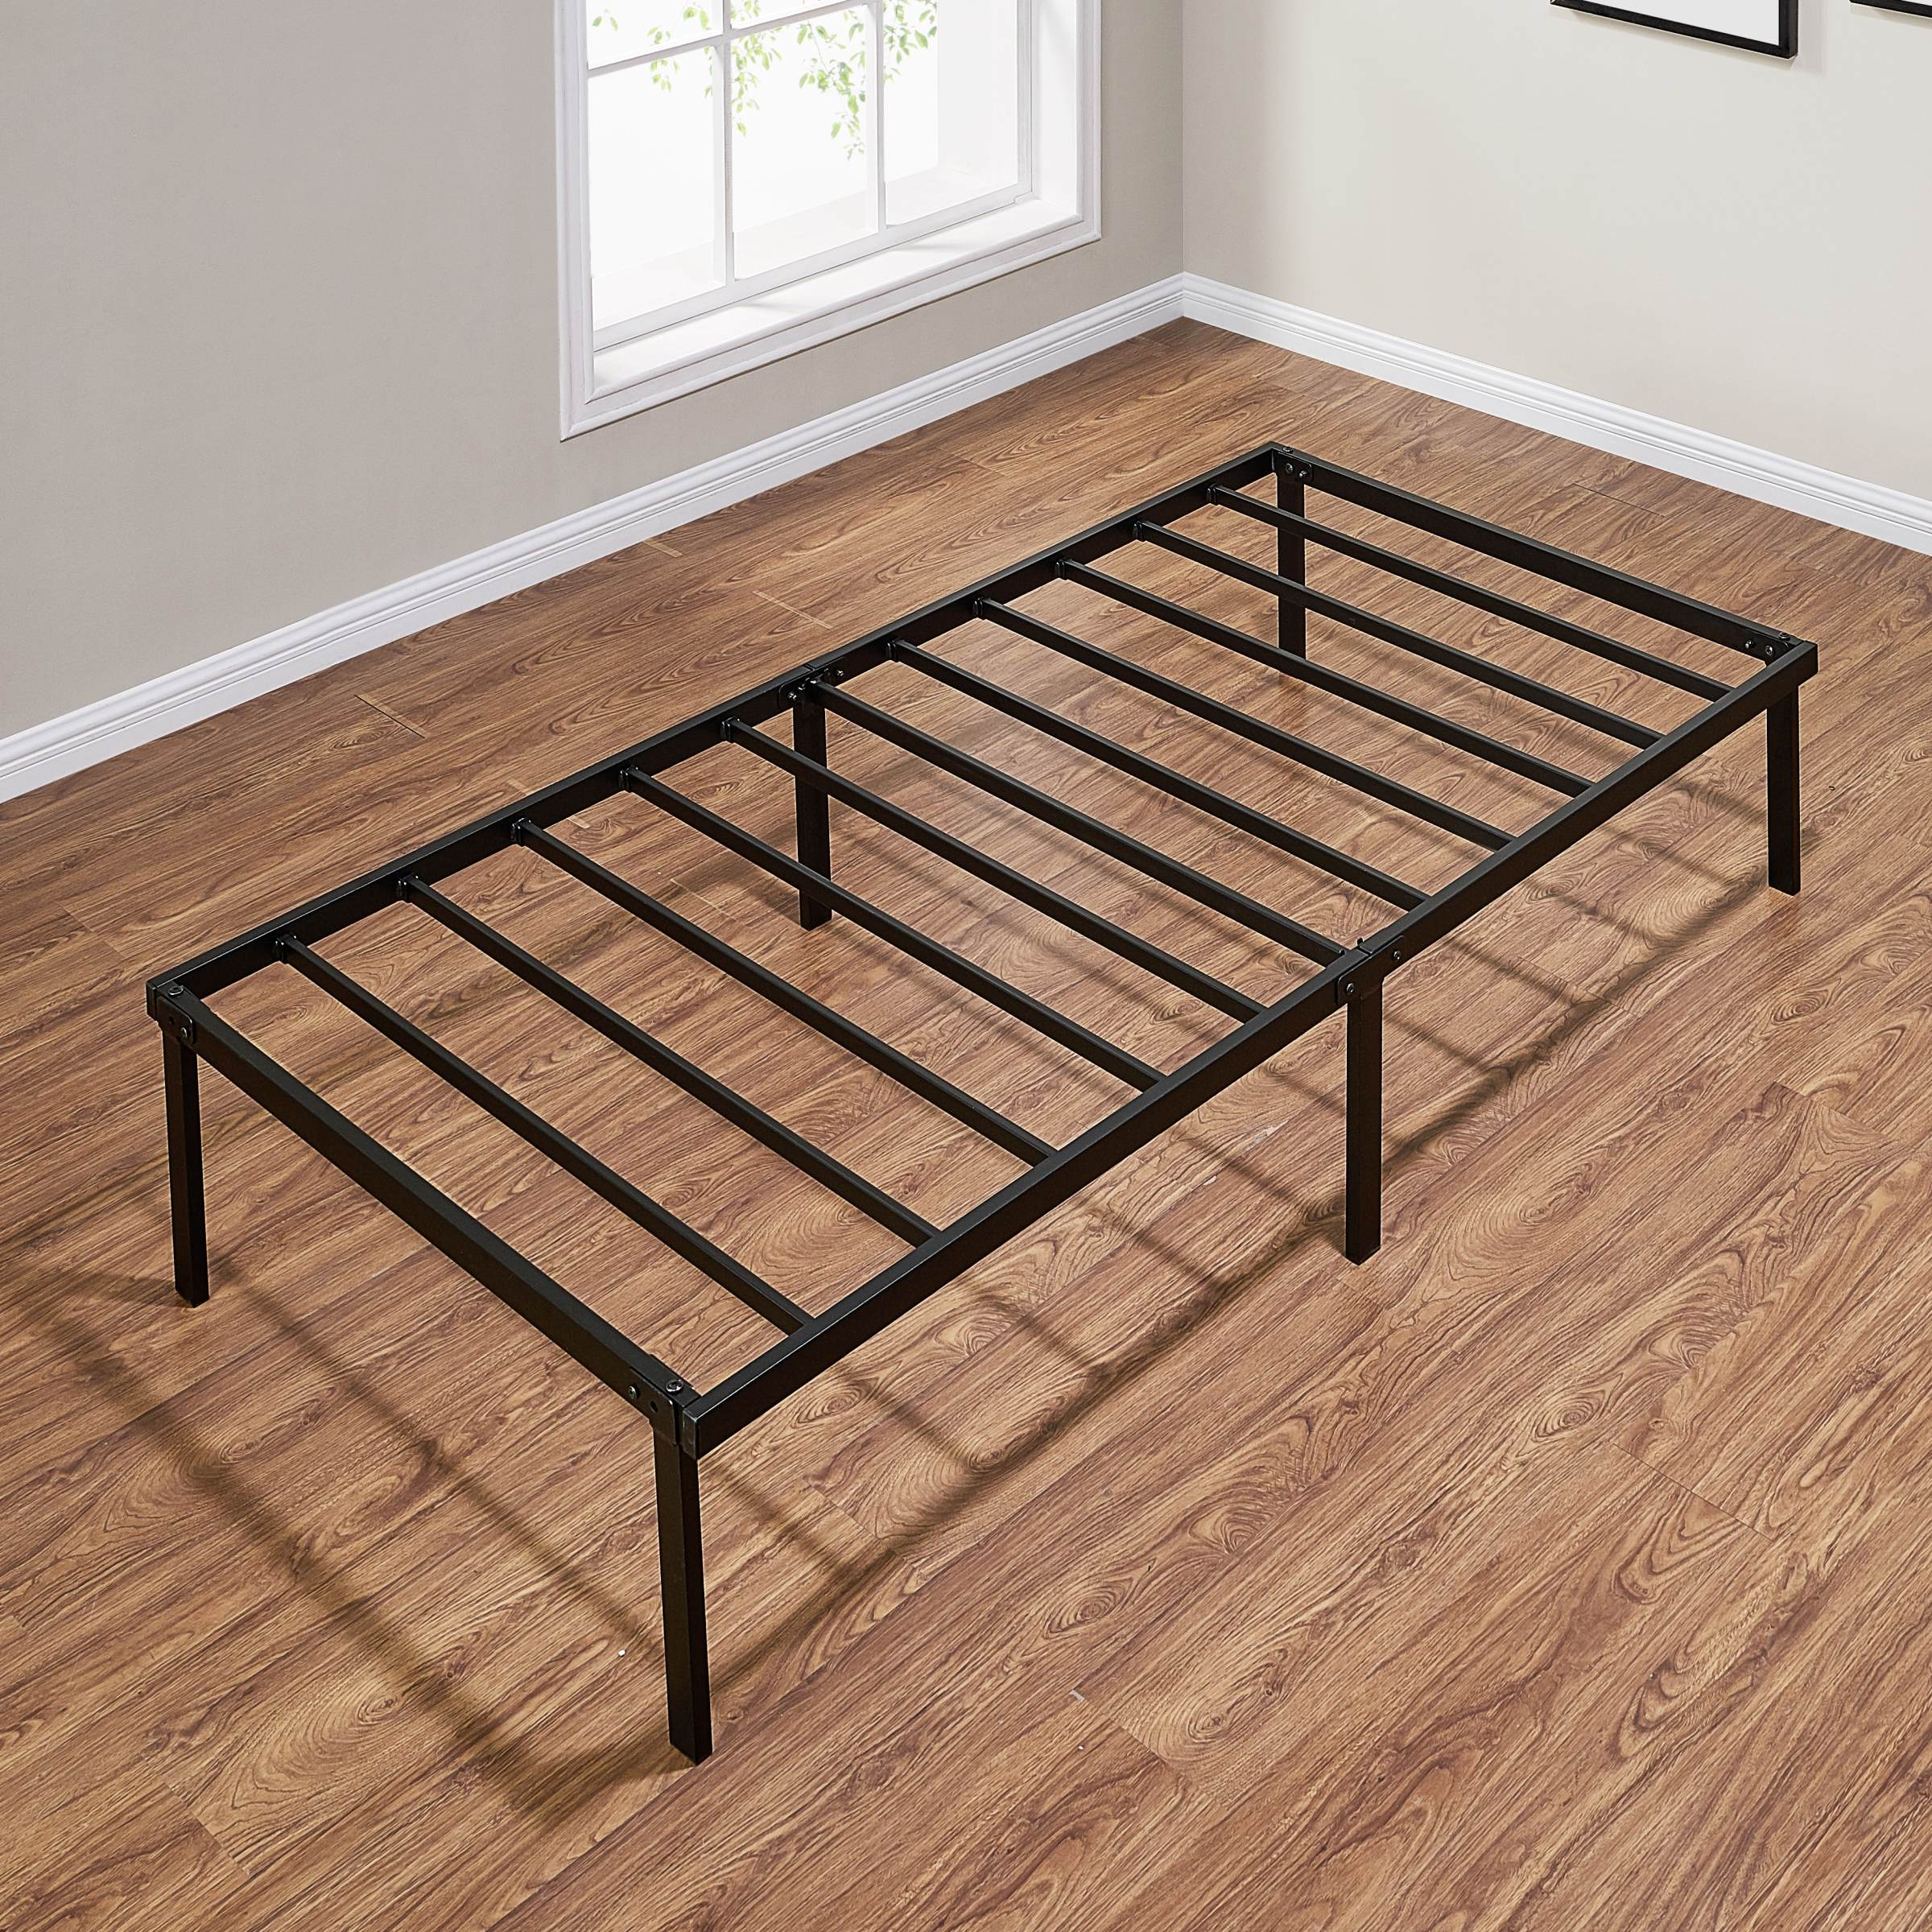 Mainstays 14 Heavy Duty Slat Bed Frame Black Steel Twin Walmart Com Walmart Com